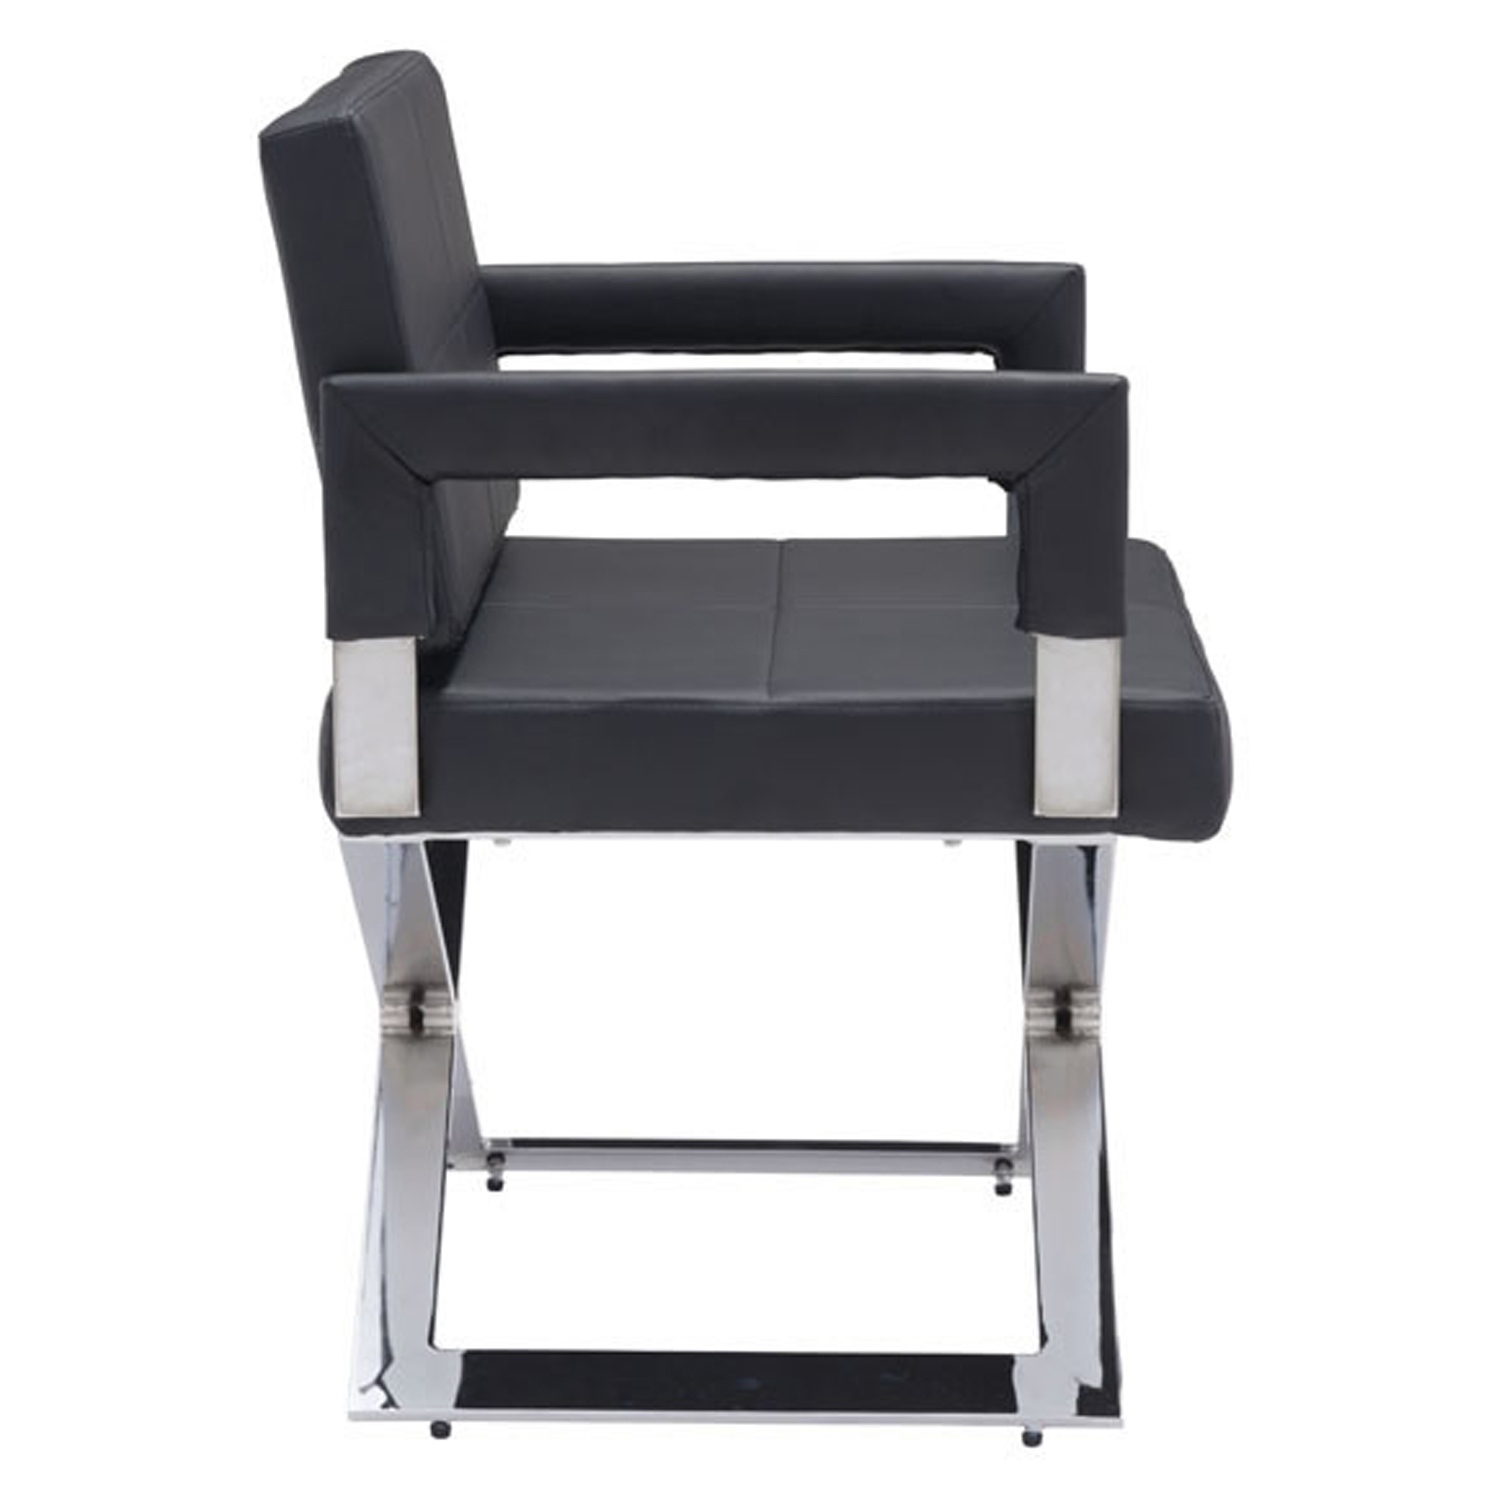 Yes Dining Chair - Black - ZM-100357